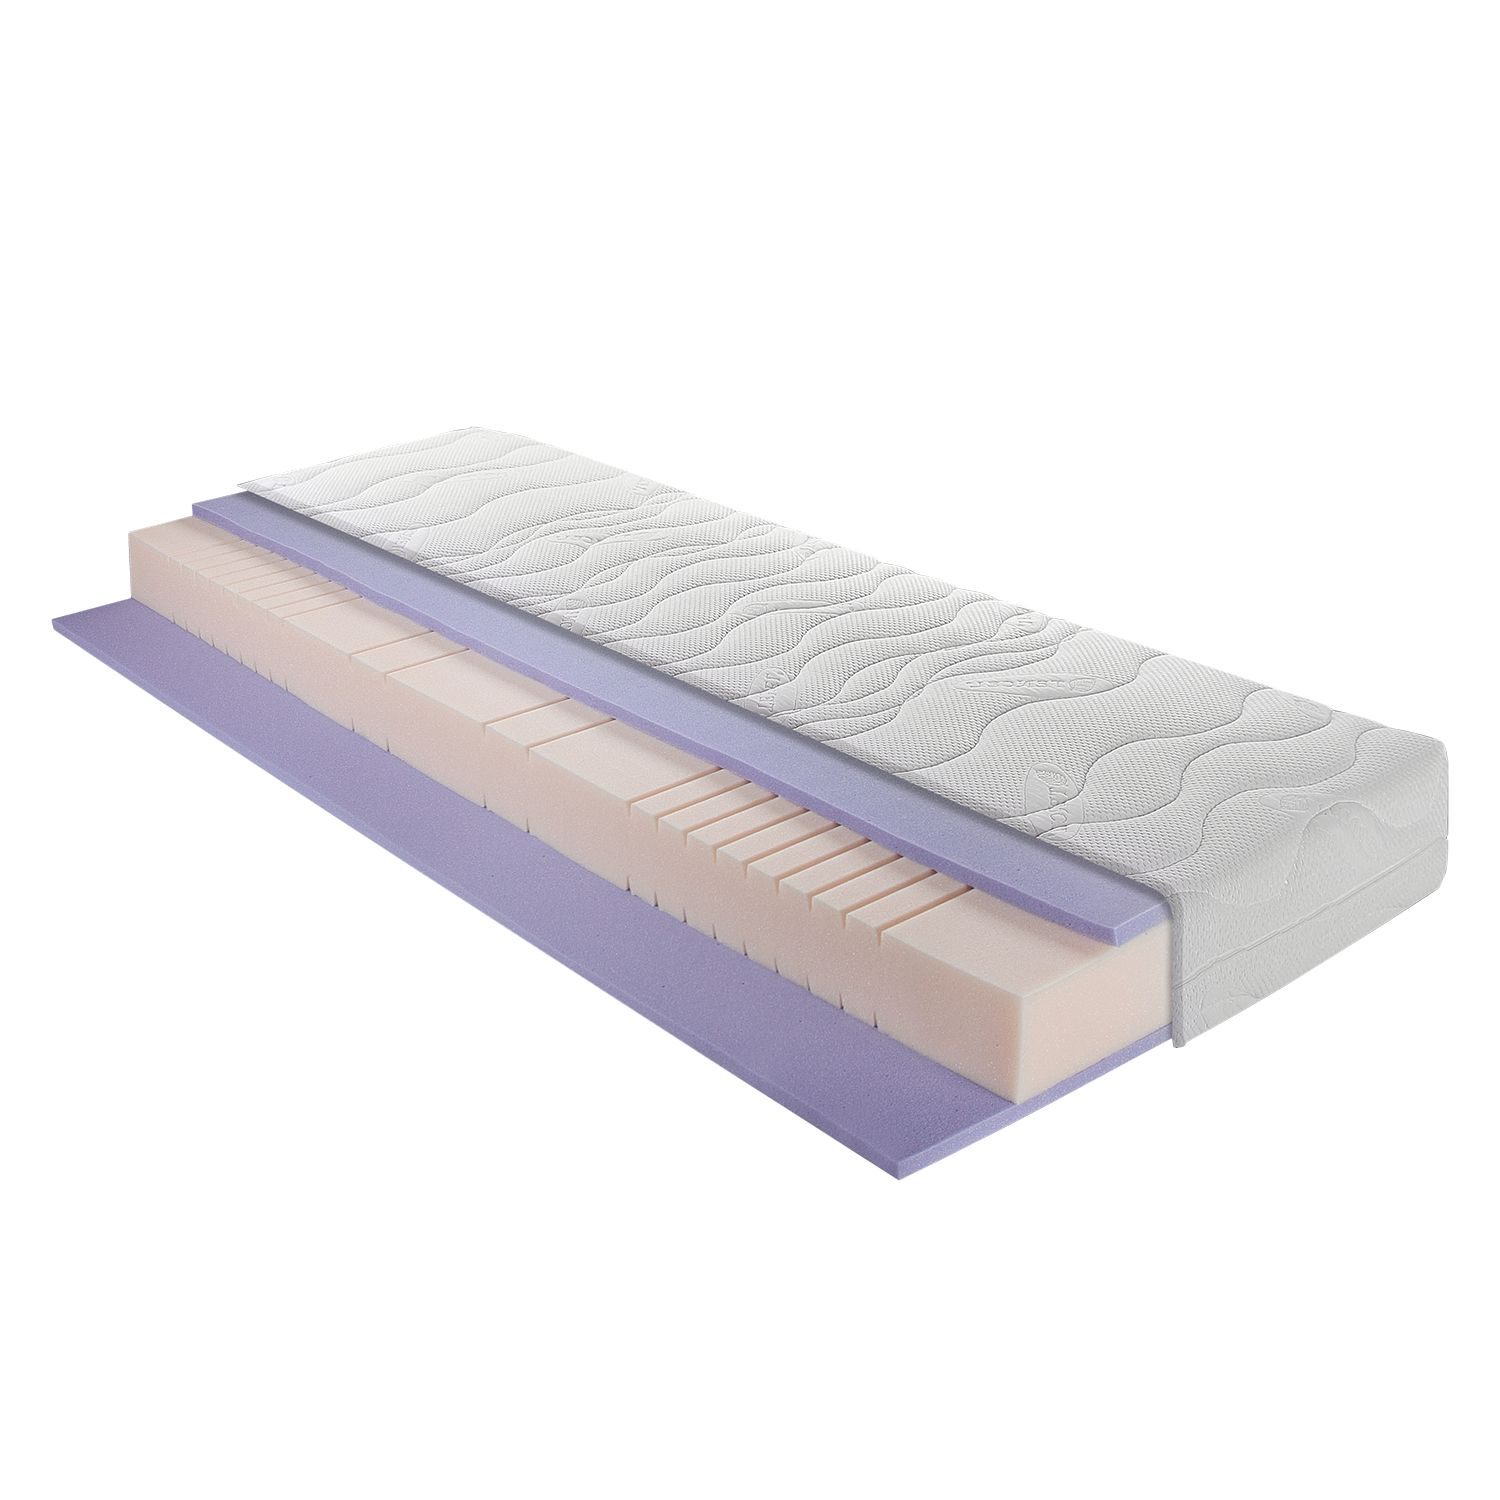 Materasso schiuma e gel Sleep Gel Basic, Breckle